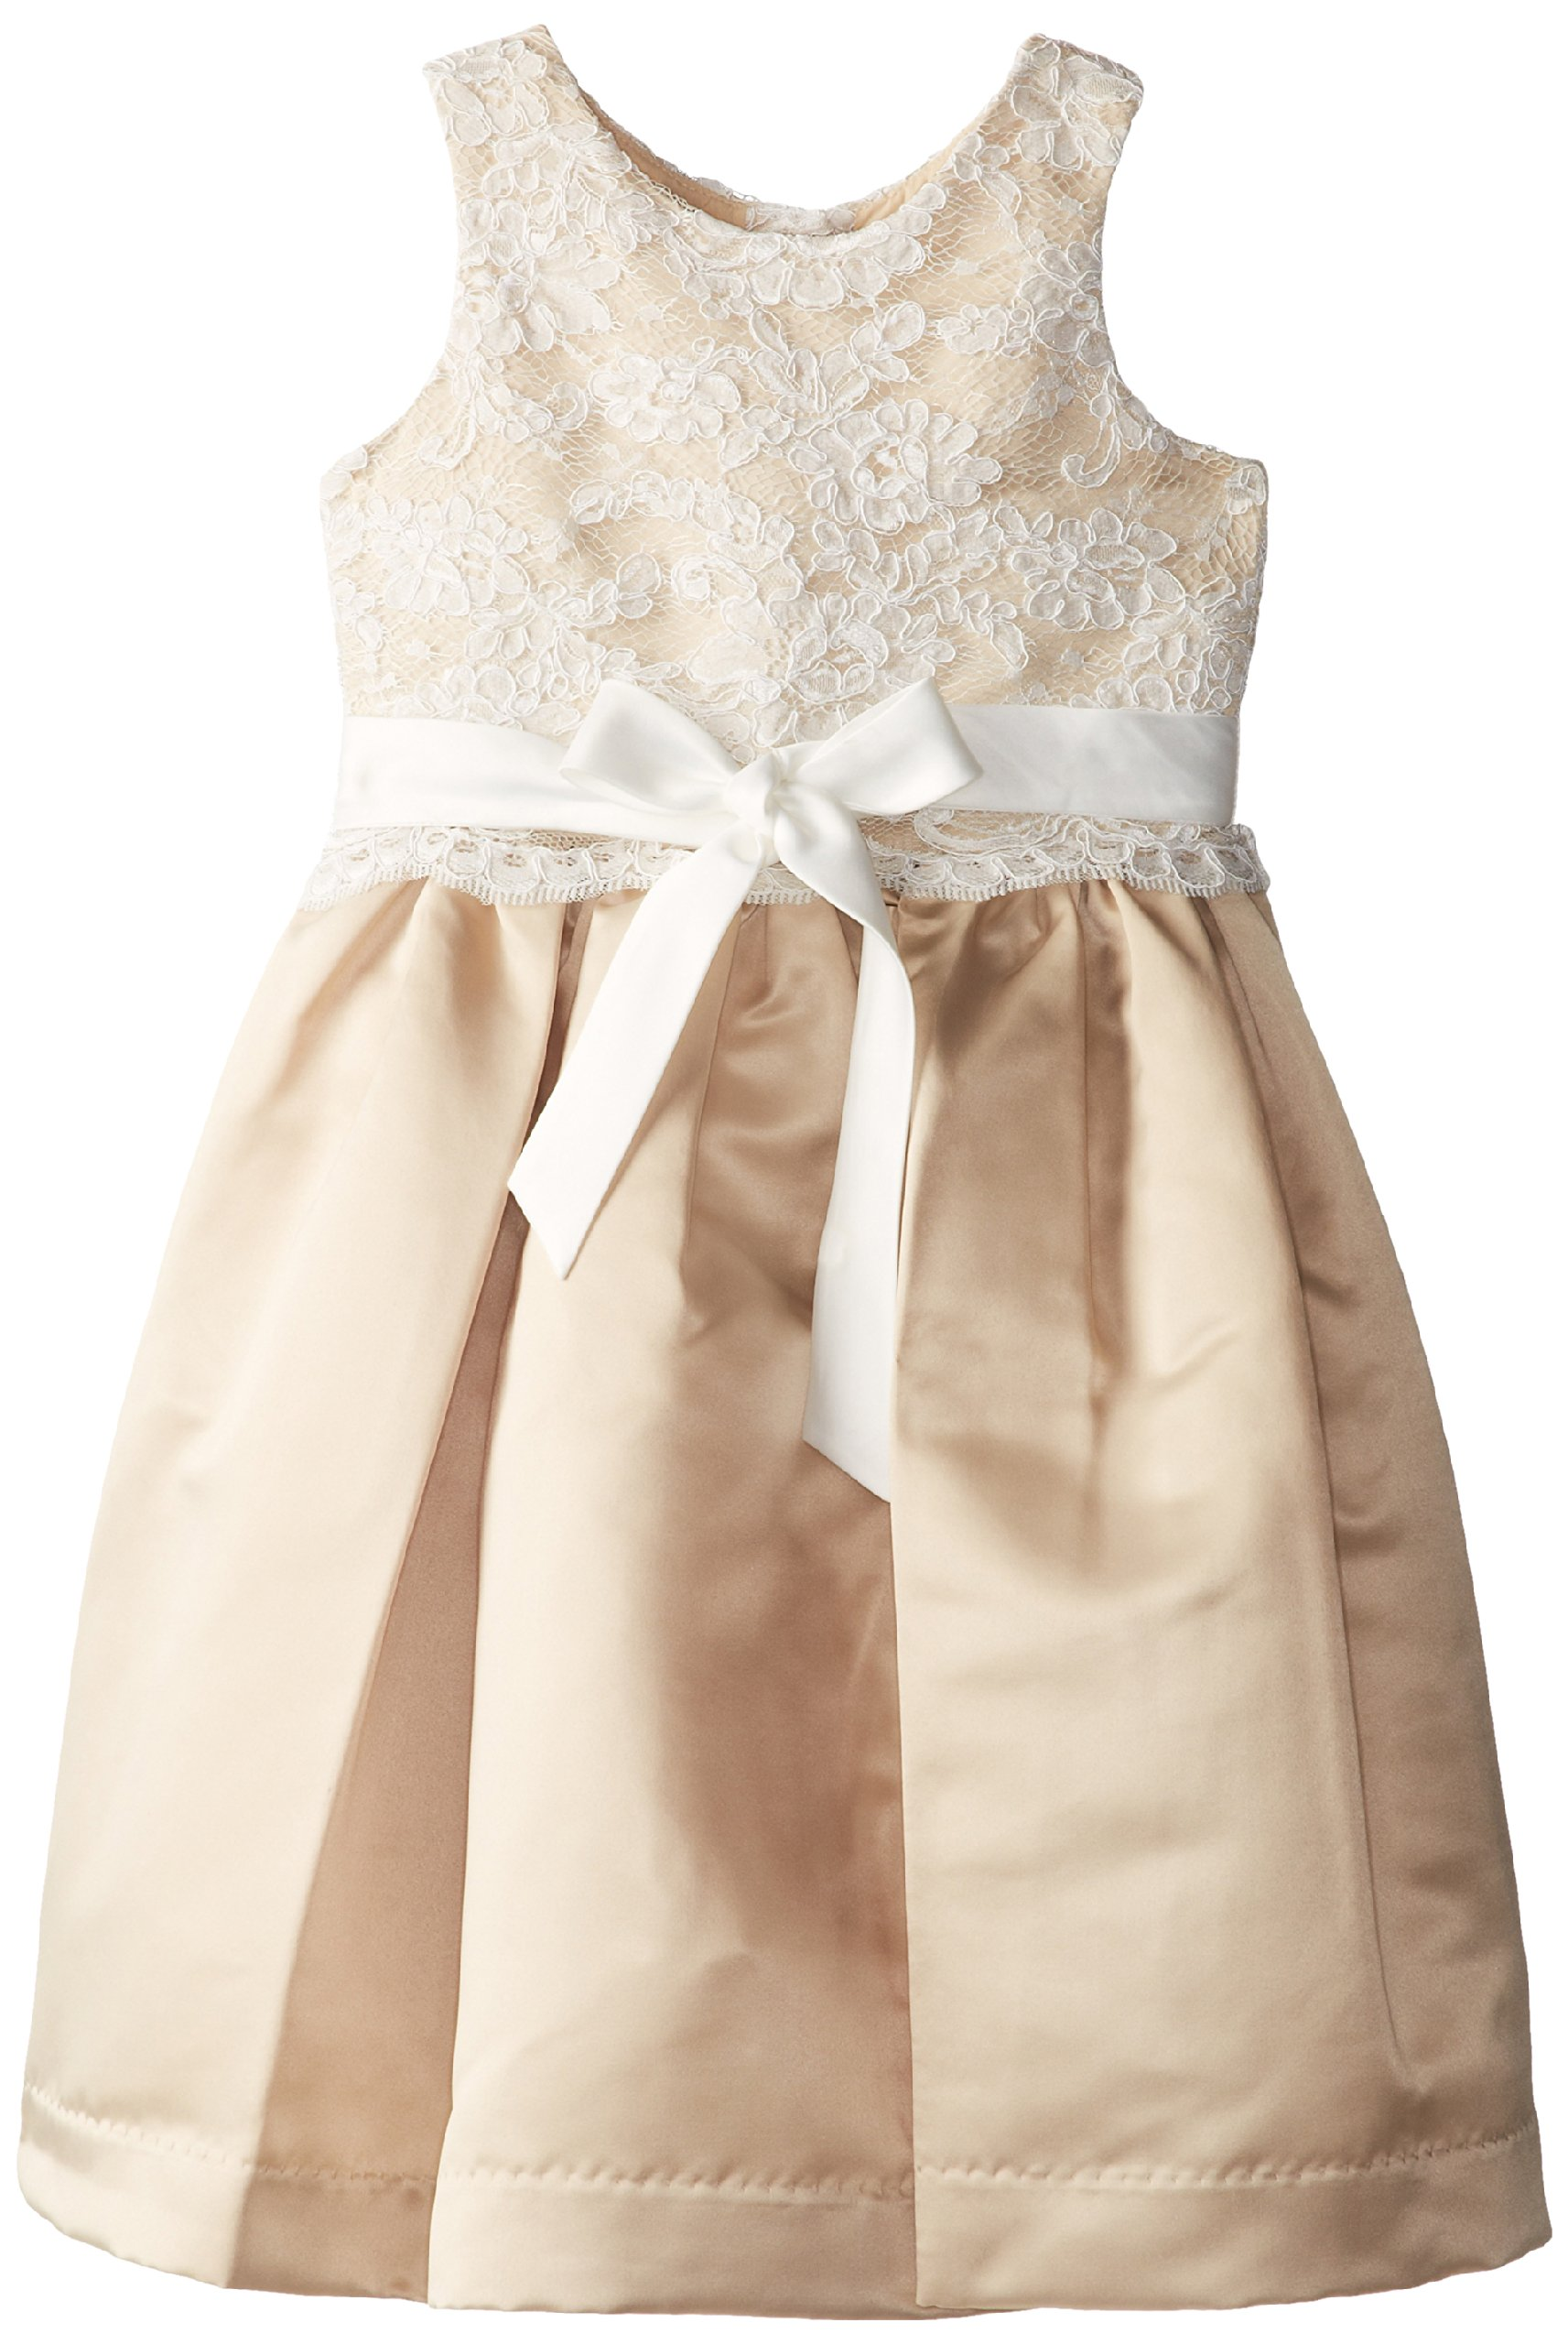 Us Angels Little Girls' Dress Lace Overlay with Satin Skirt, Ivory/Champagne, 6